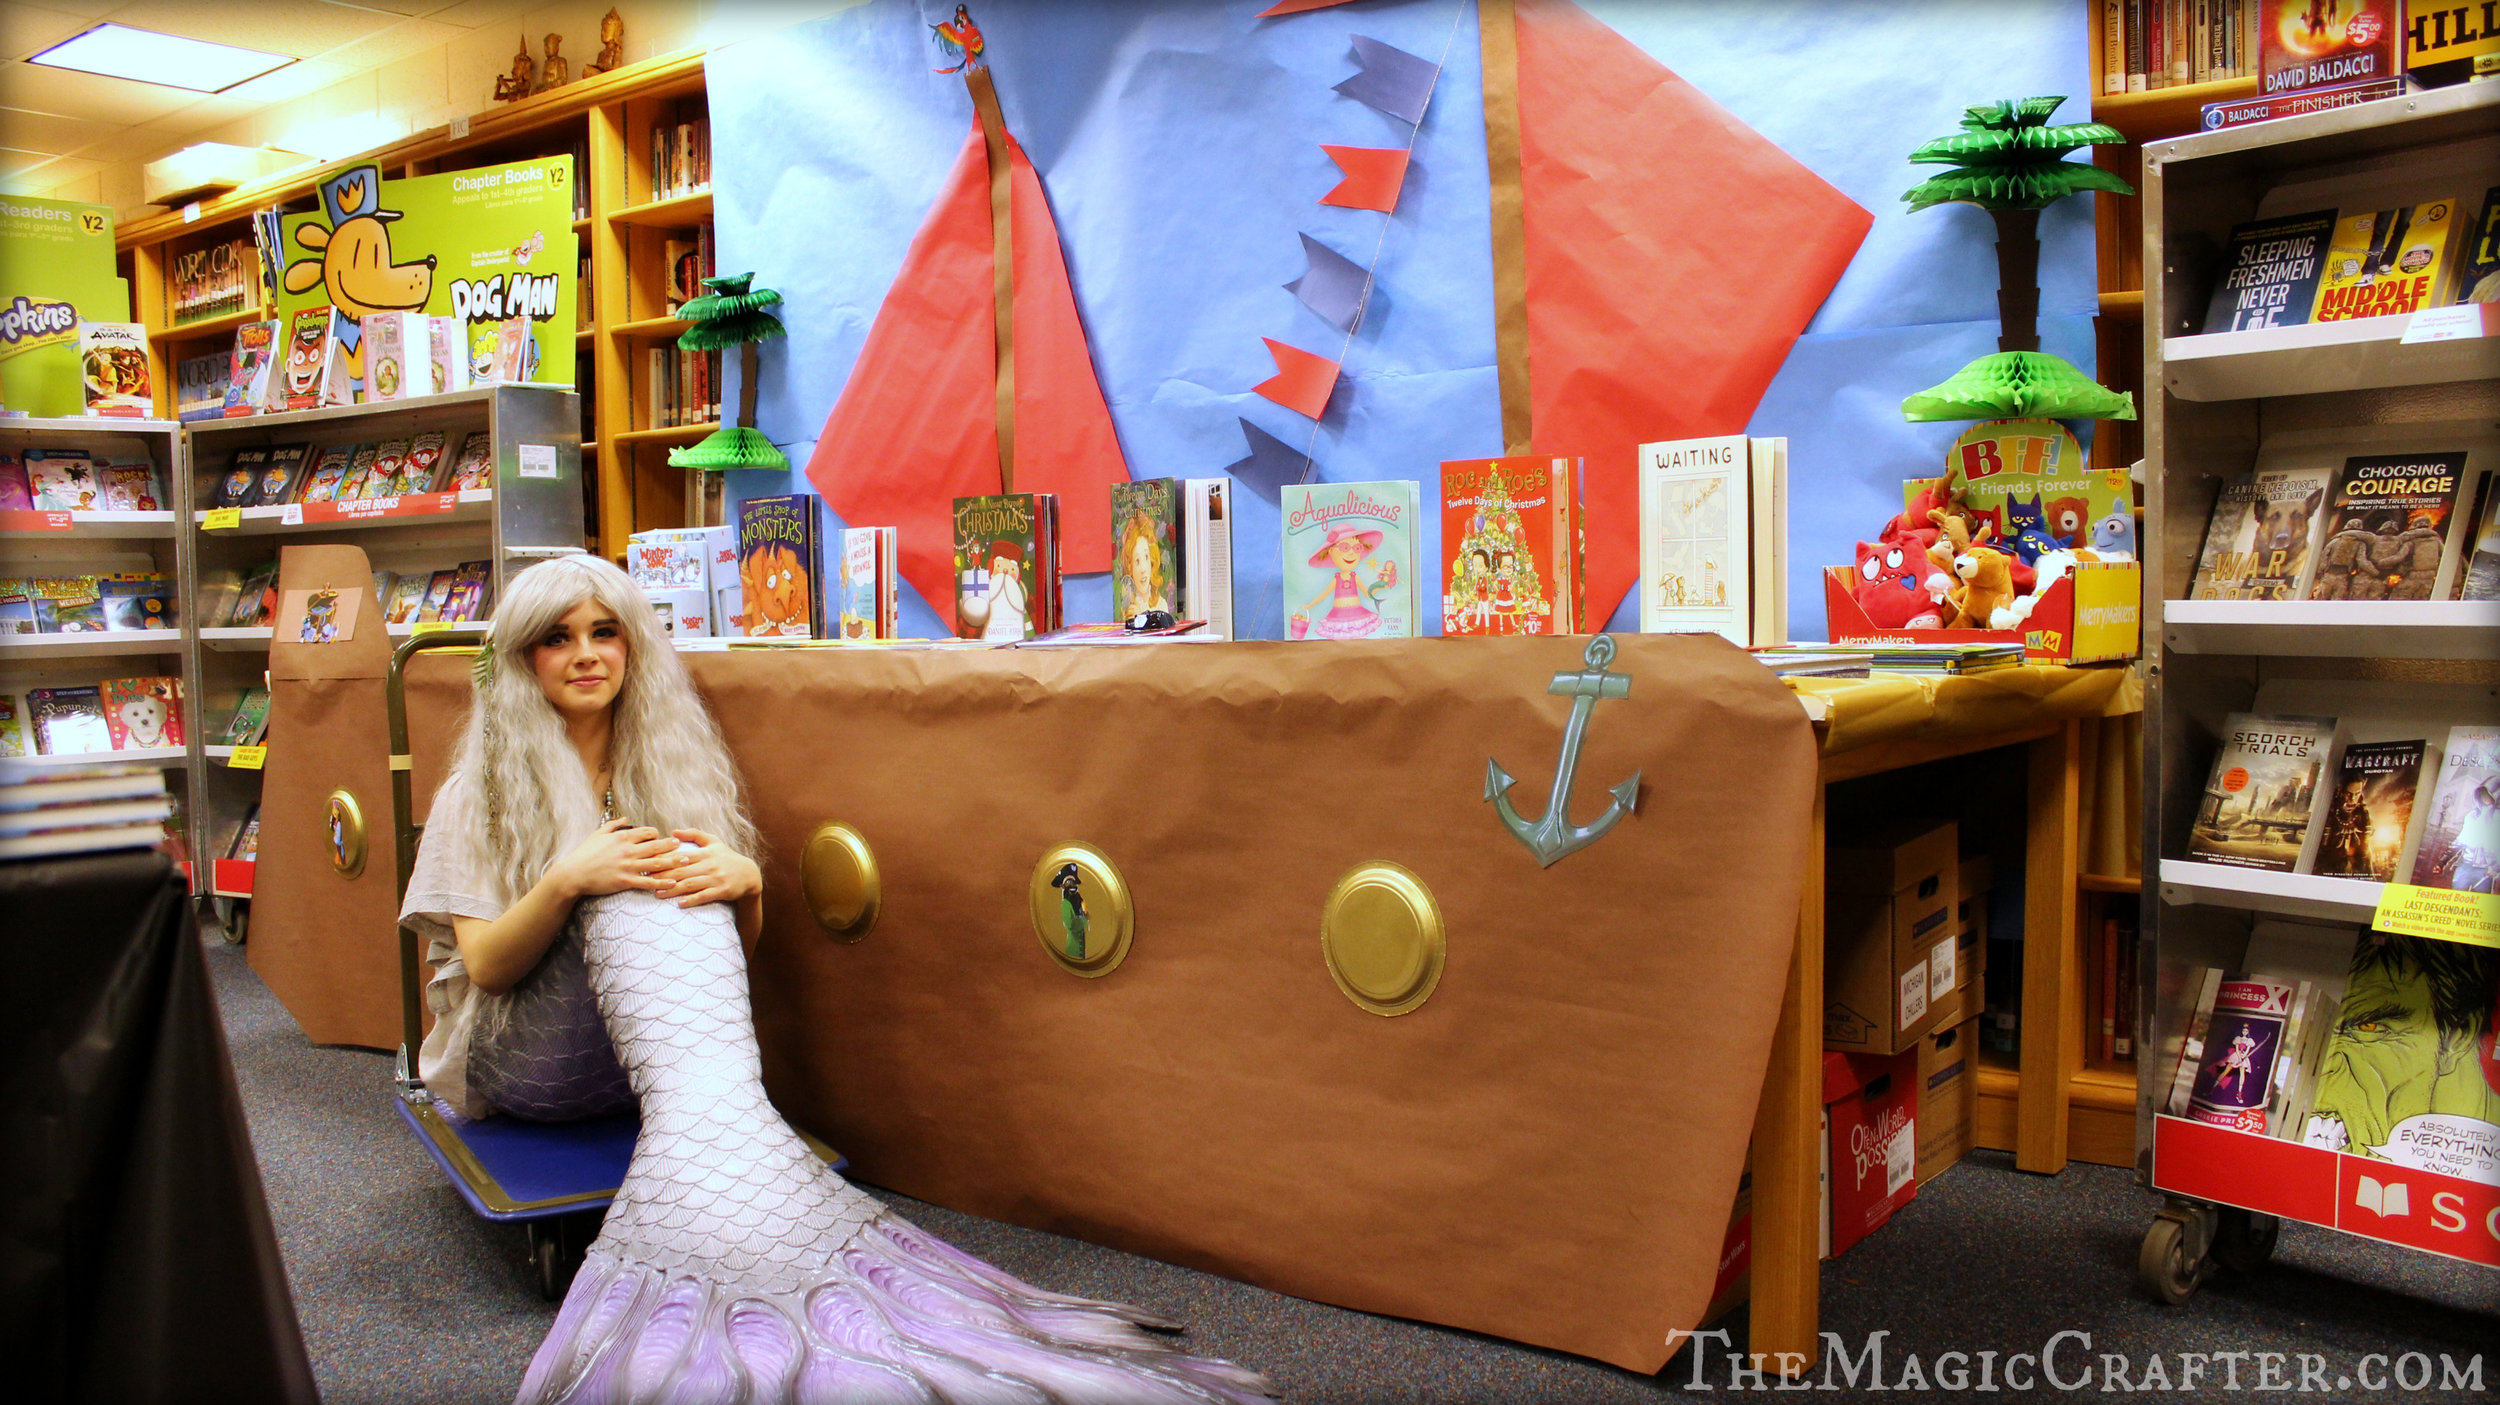 Yesterday (November 29th of 2016) I was a mermaid at the book fair of Northport Public School from 6:00 PM- 8:00 PM. The theme of the event was pirates, so I felt right at home around the ship that was anchored in the library of the school. It looked really neat and made for a lovely perch for some of the books to sit on. However, the pirates were nowhere to be seen...